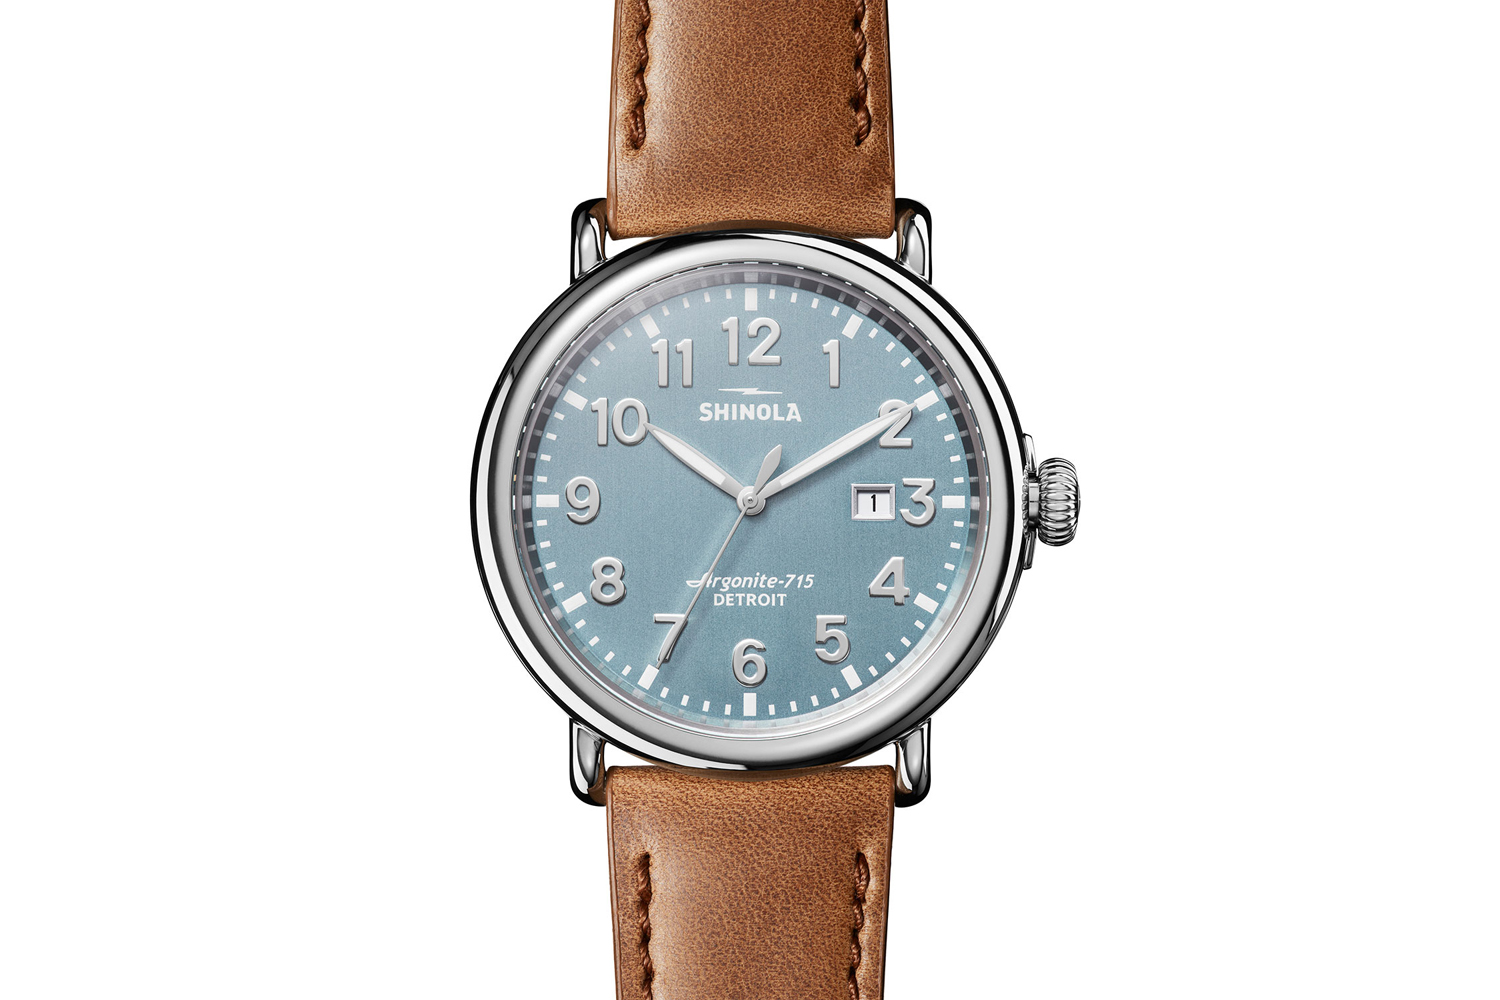 47mm Runwell 3HD Watch with Leather Strap